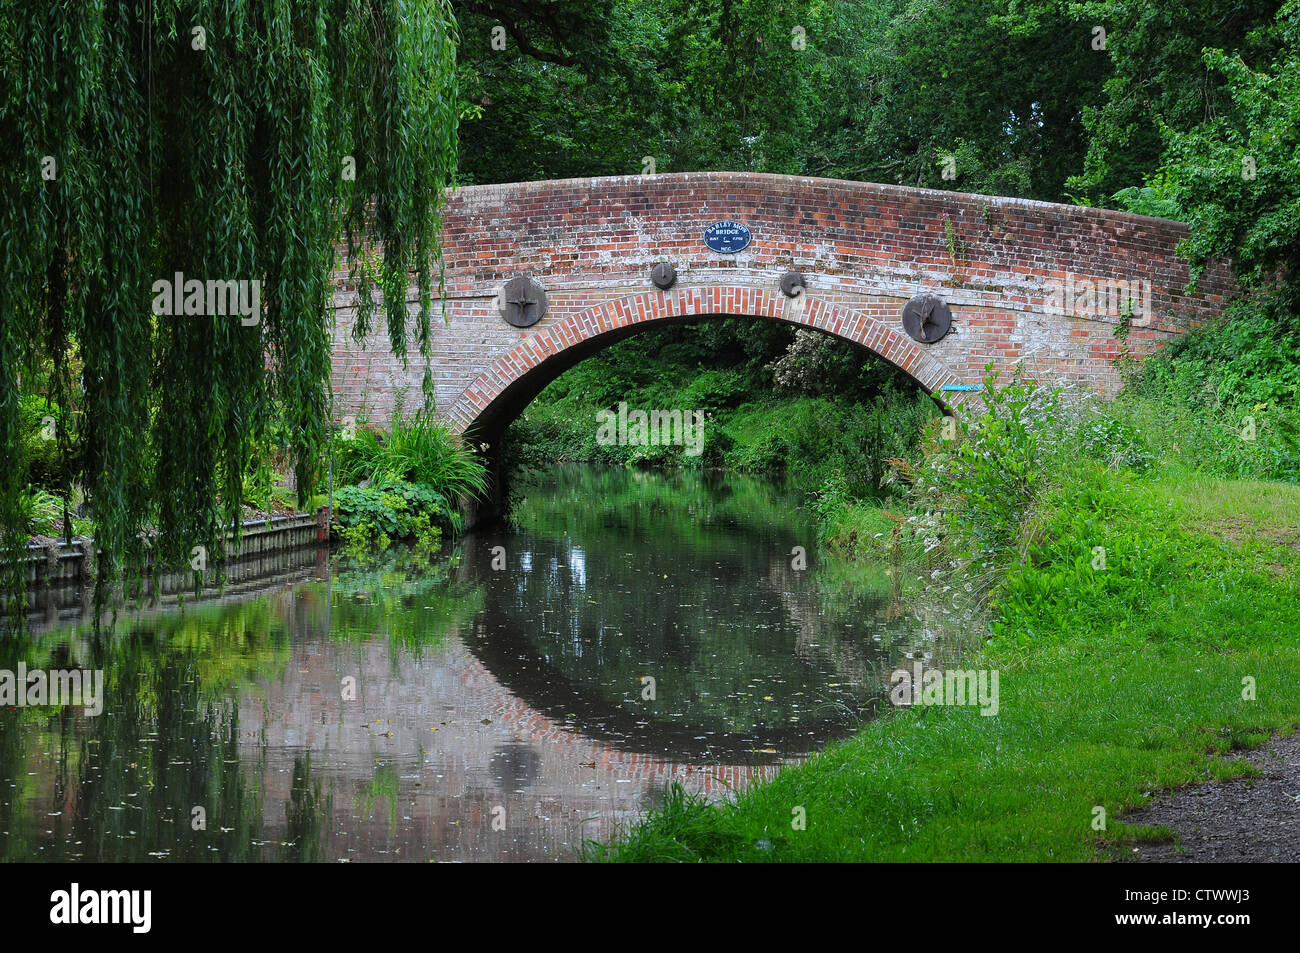 A bridge on the Basingstoke canal with its reflection UK - Stock Image